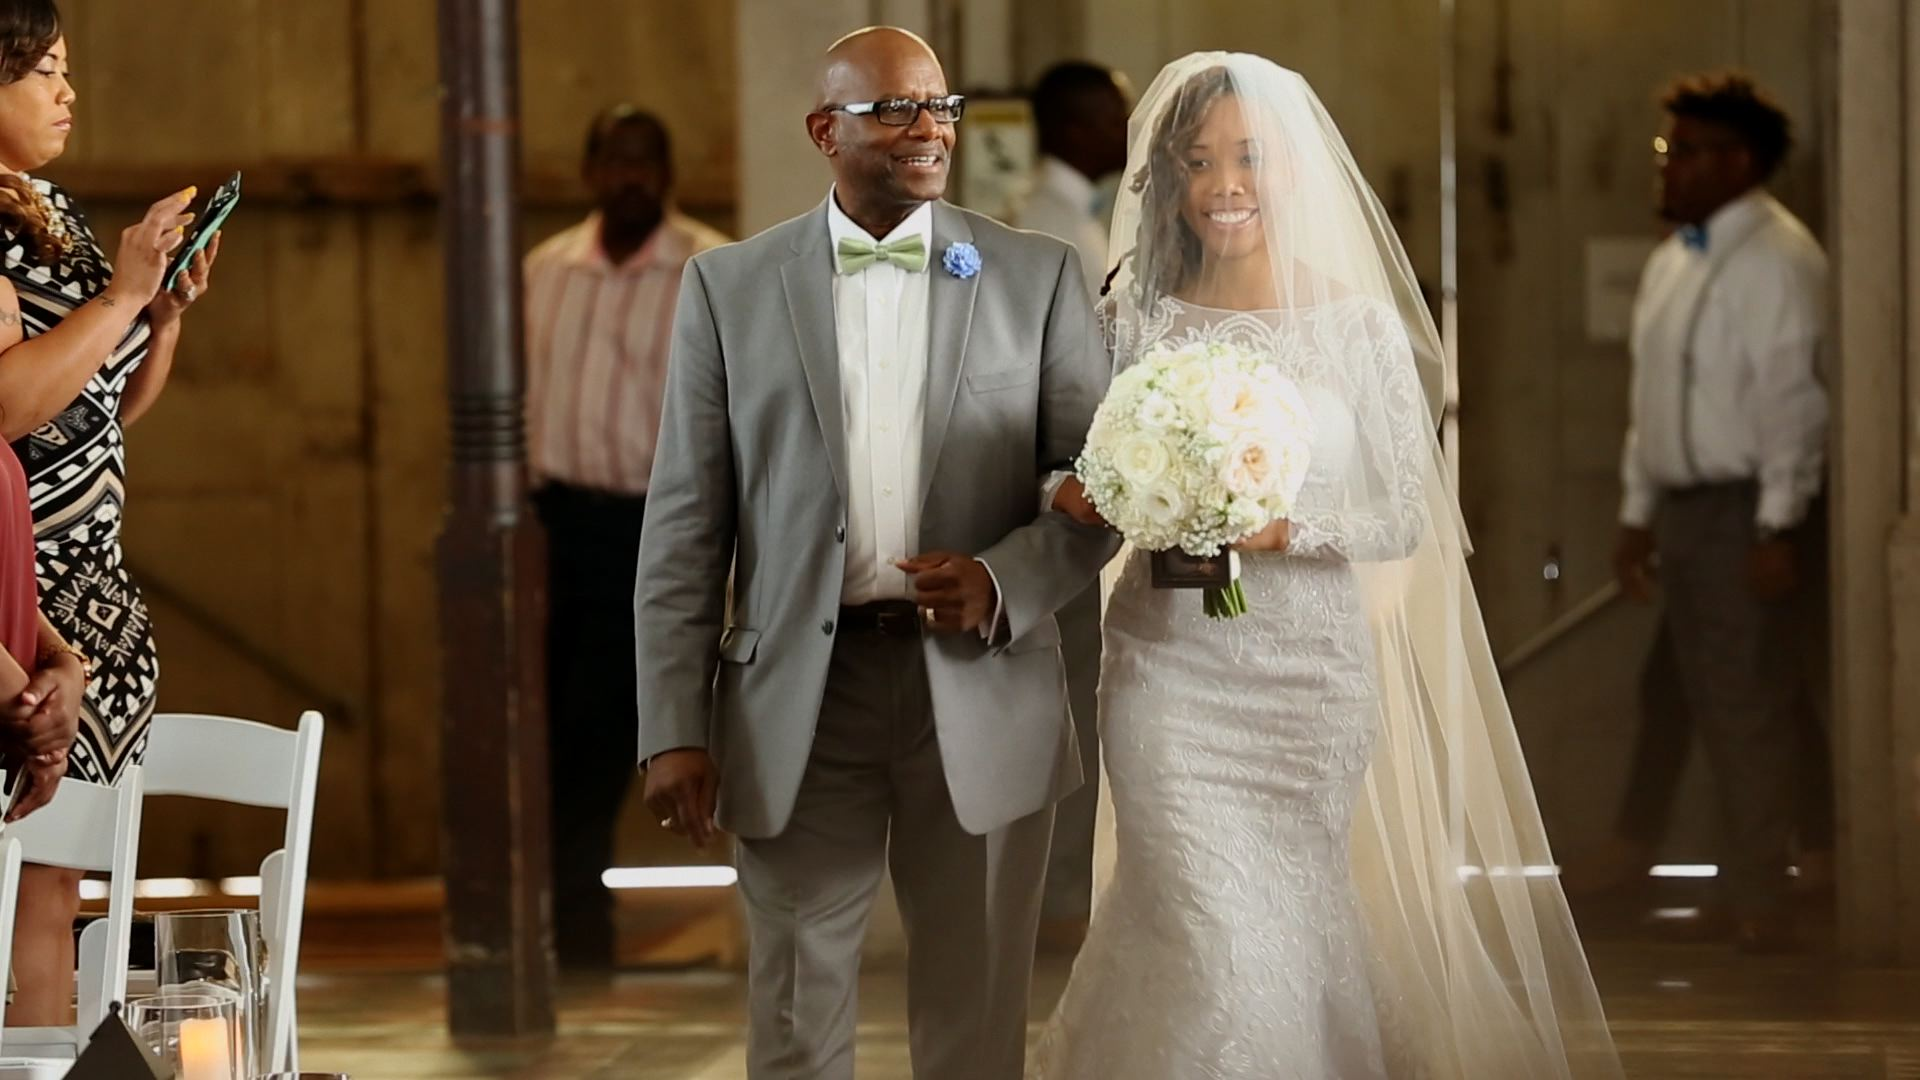 Her beautiful veil and blusher made her glow walking down the aisle!